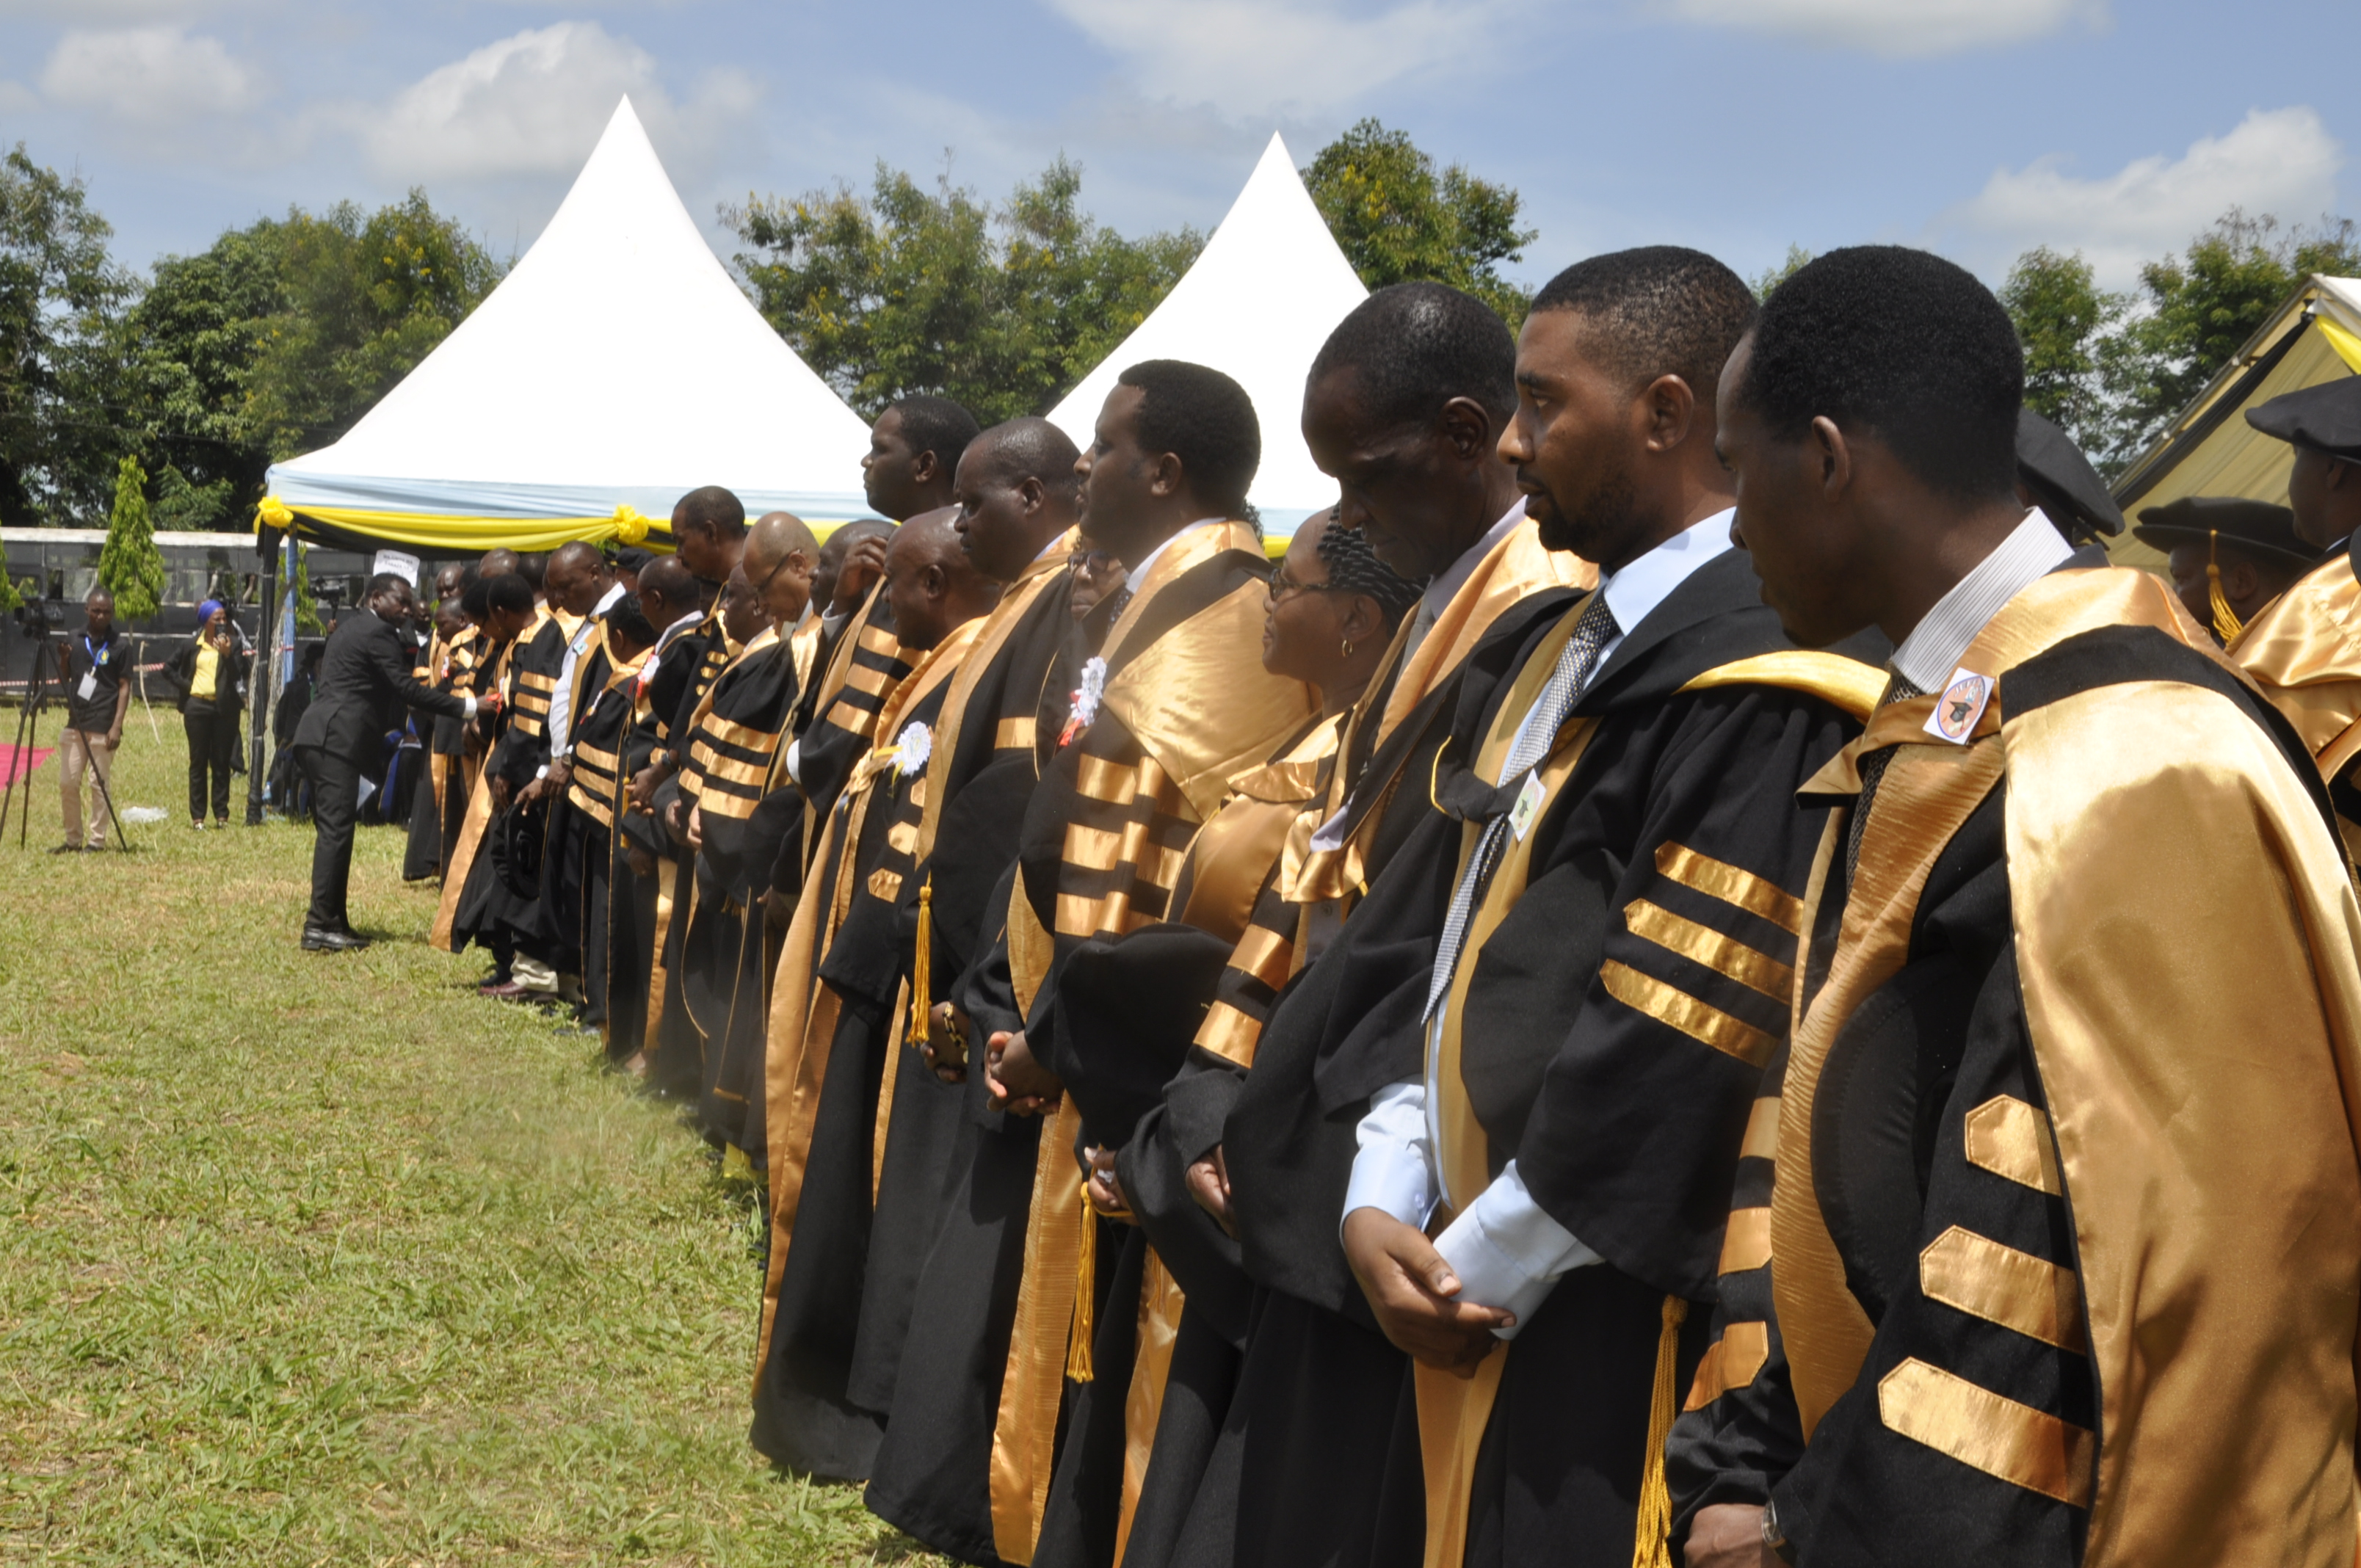 PhD Graduates in a moment before conferred during the 37th Graduation Ceremony of the Open University of Tanzania held on 28th November 2019 in Bungo, Kibaha.